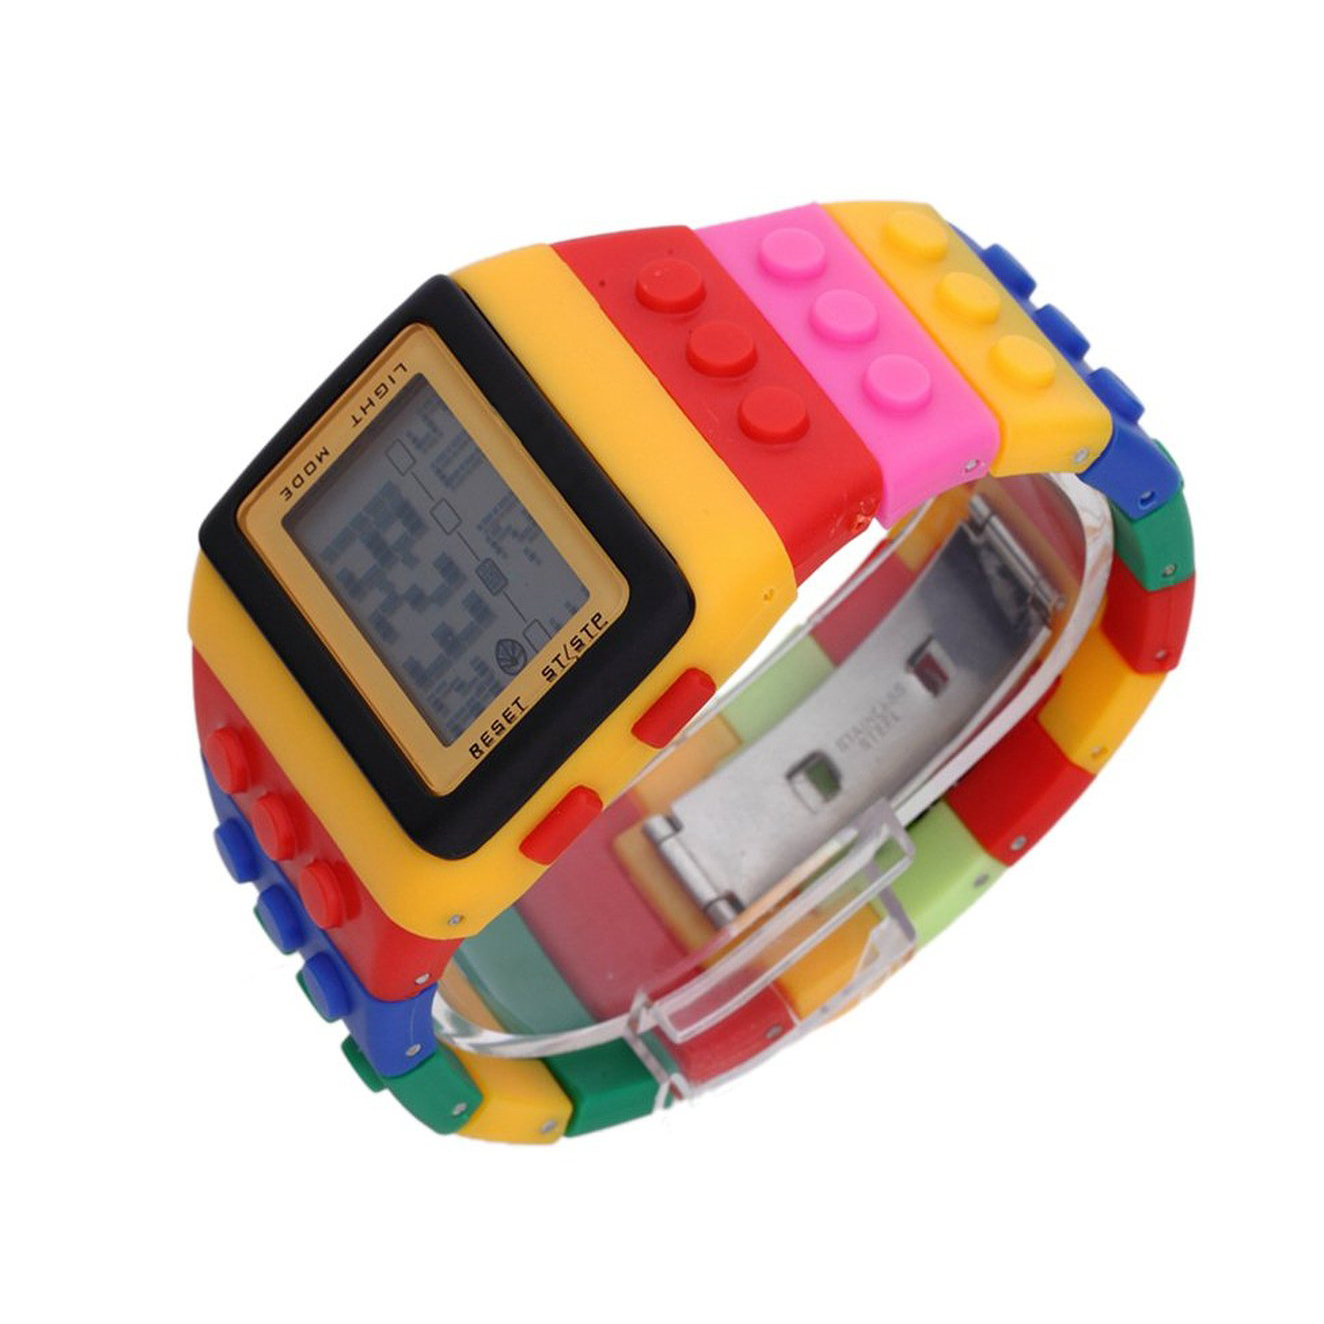 YCYC!5*Multi-Color Block Wrist Watch with LED Night Light - Yellow